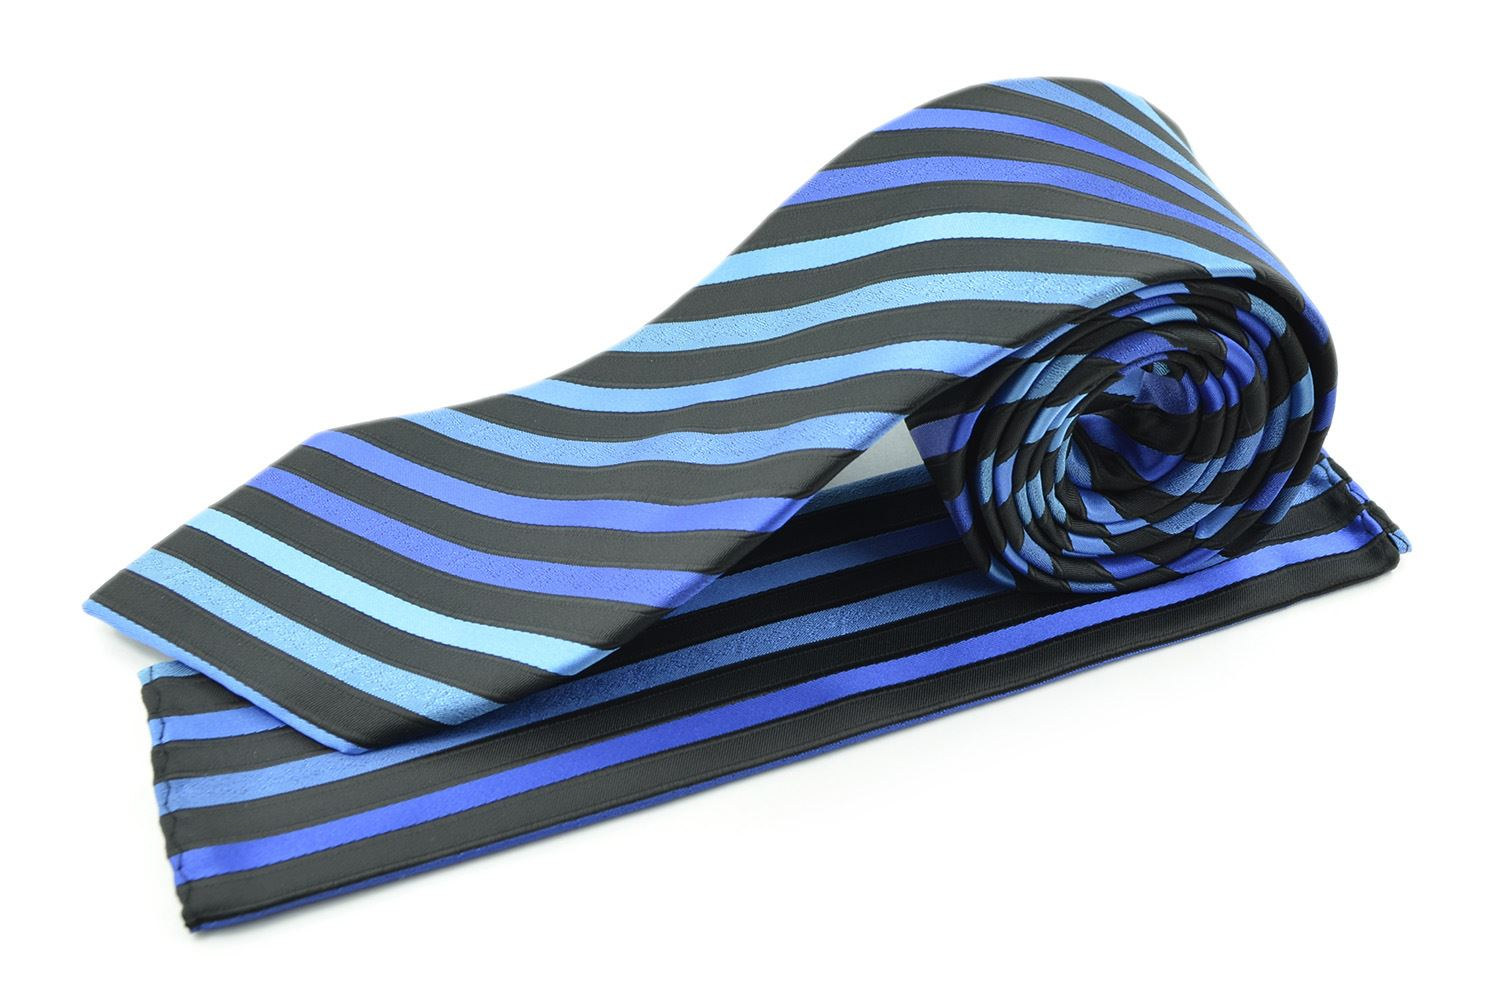 Moda Di Raza Men's Subtle Striped Trendy Modern Imported Silky Fashion Neckties - Blue